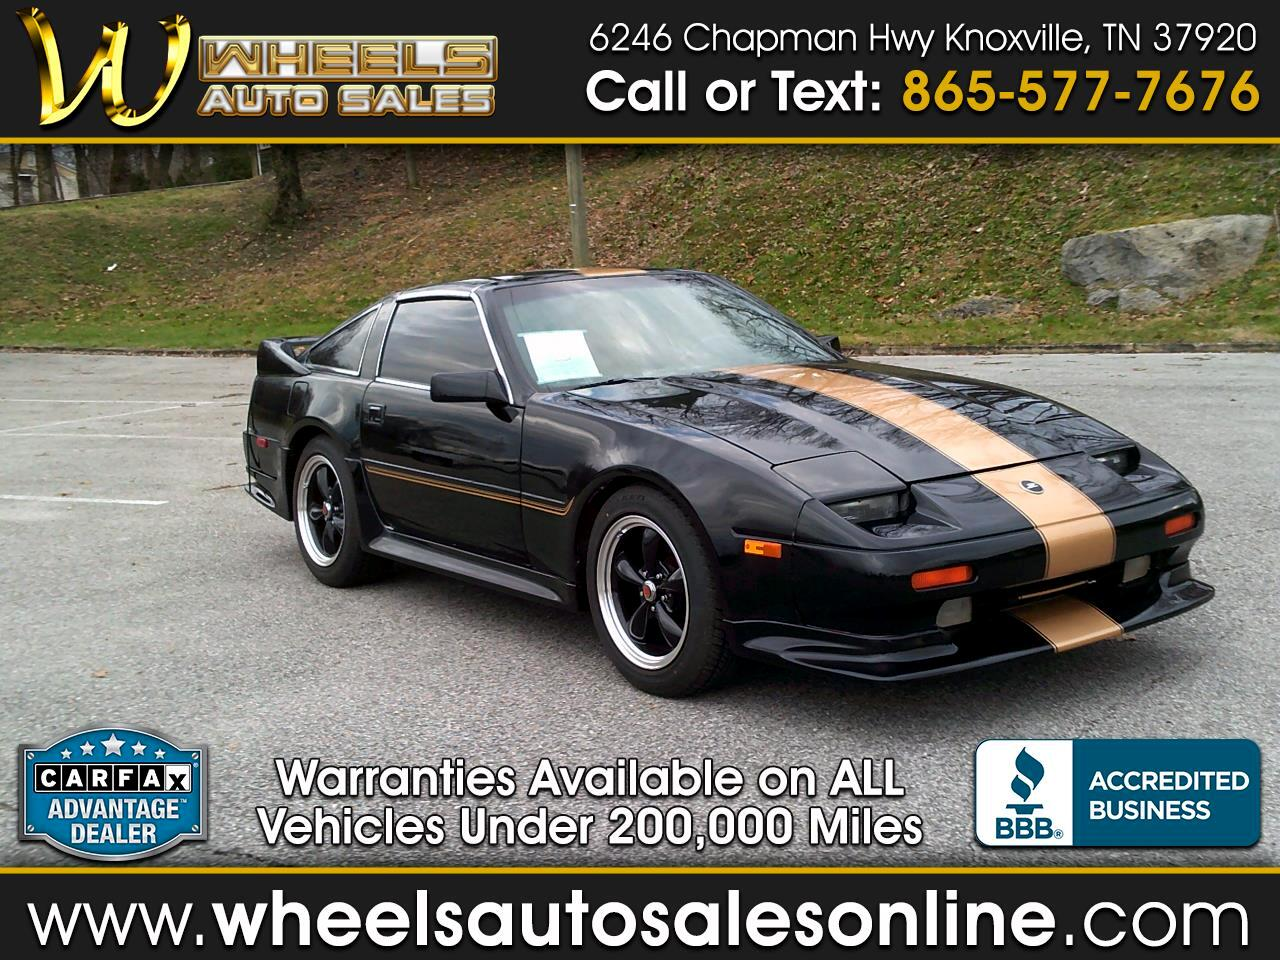 1987 Nissan 300ZX 2dr Coupe 5-Spd